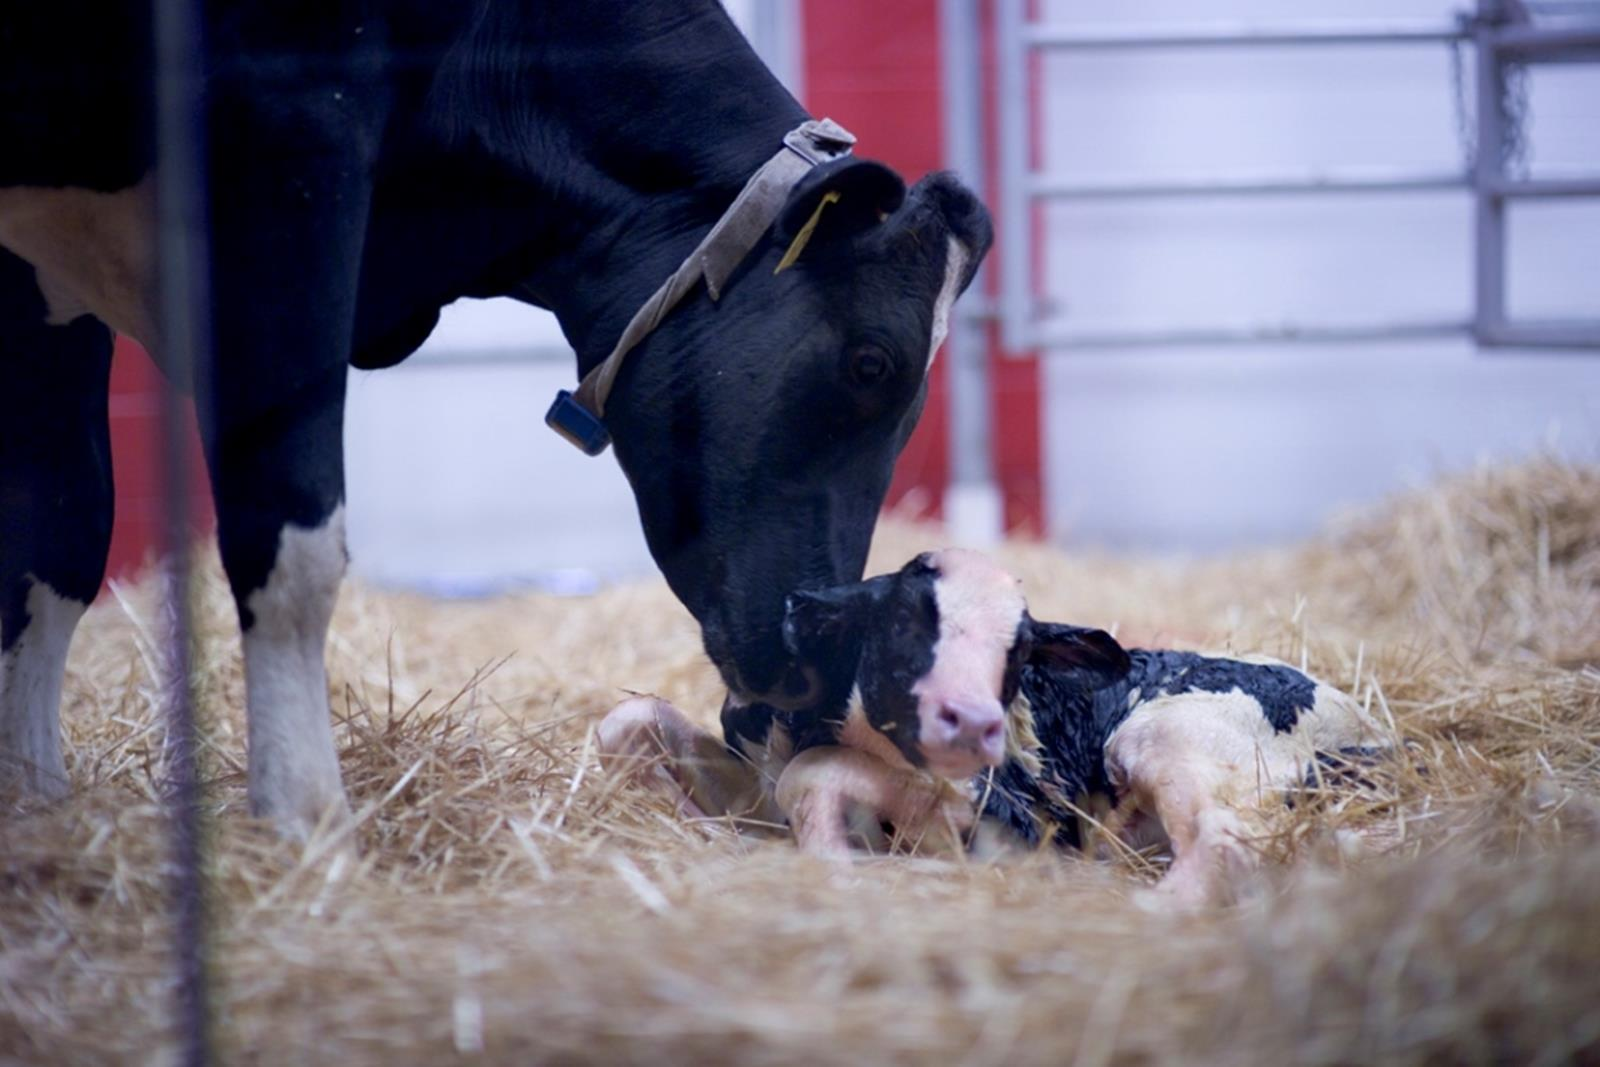 A mother and calf in the birthing barn. Credit: Fair Oaks Farms